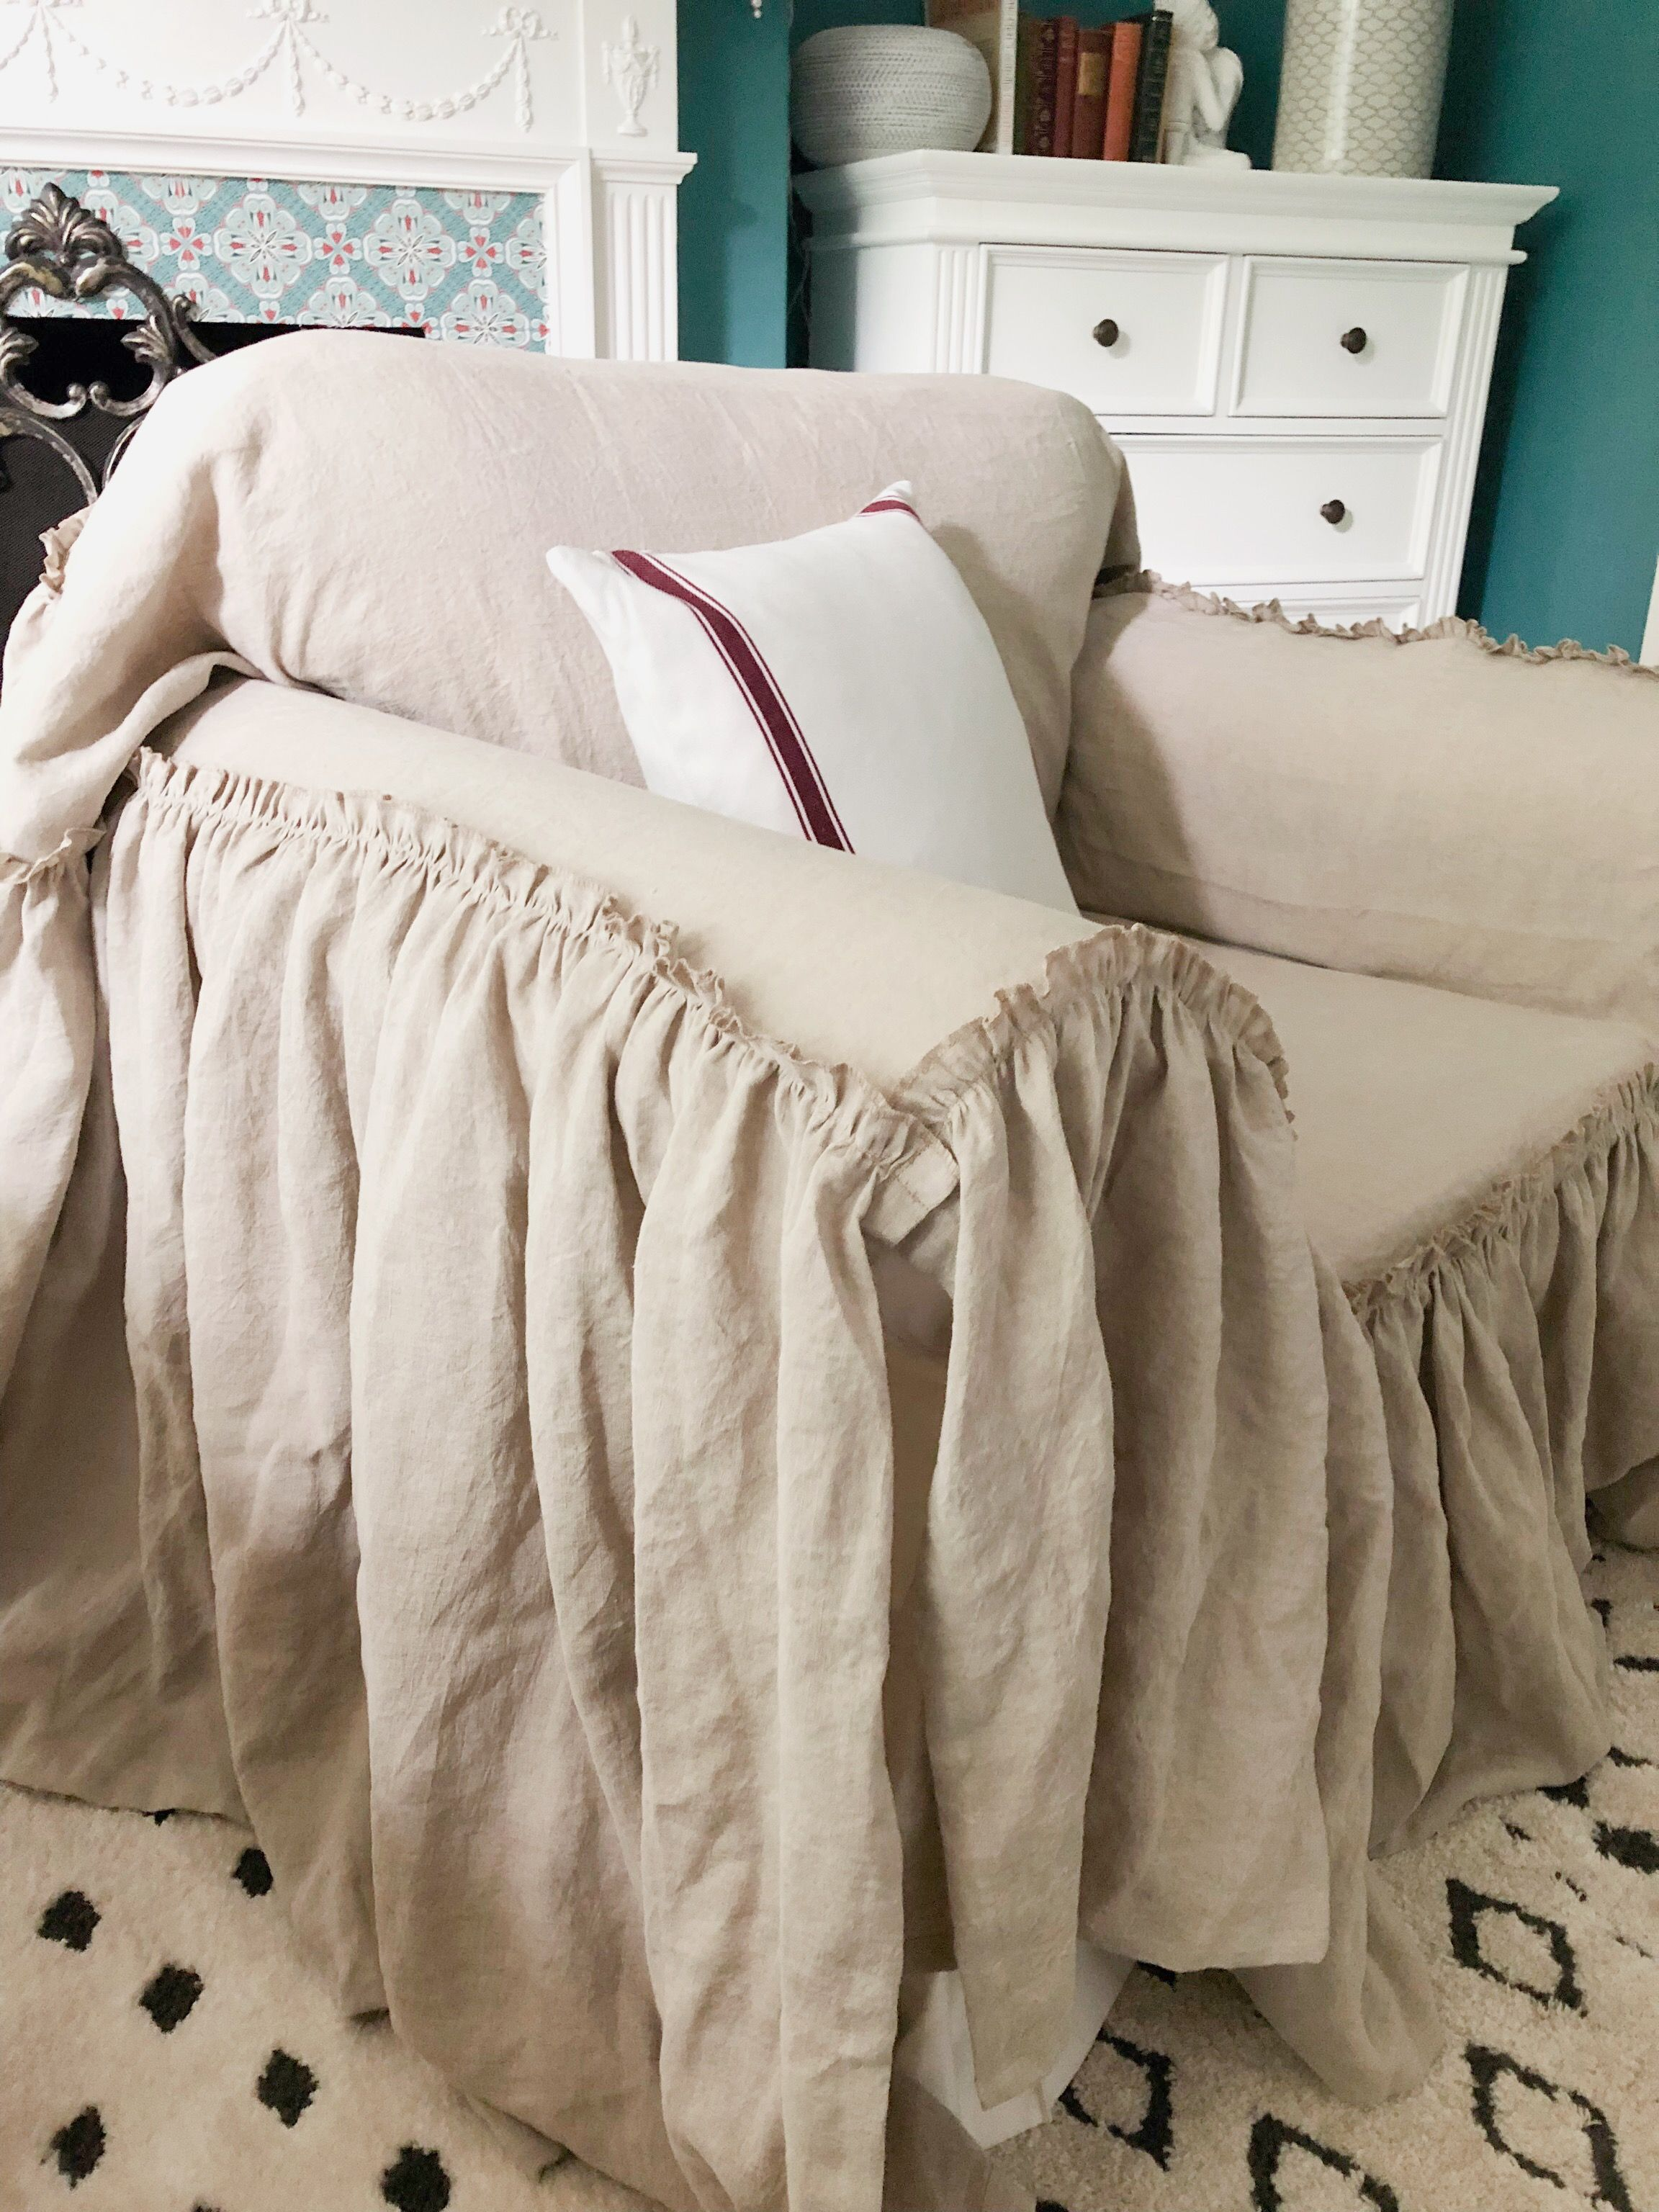 Natural linen slipcover Slipcovers for chairs